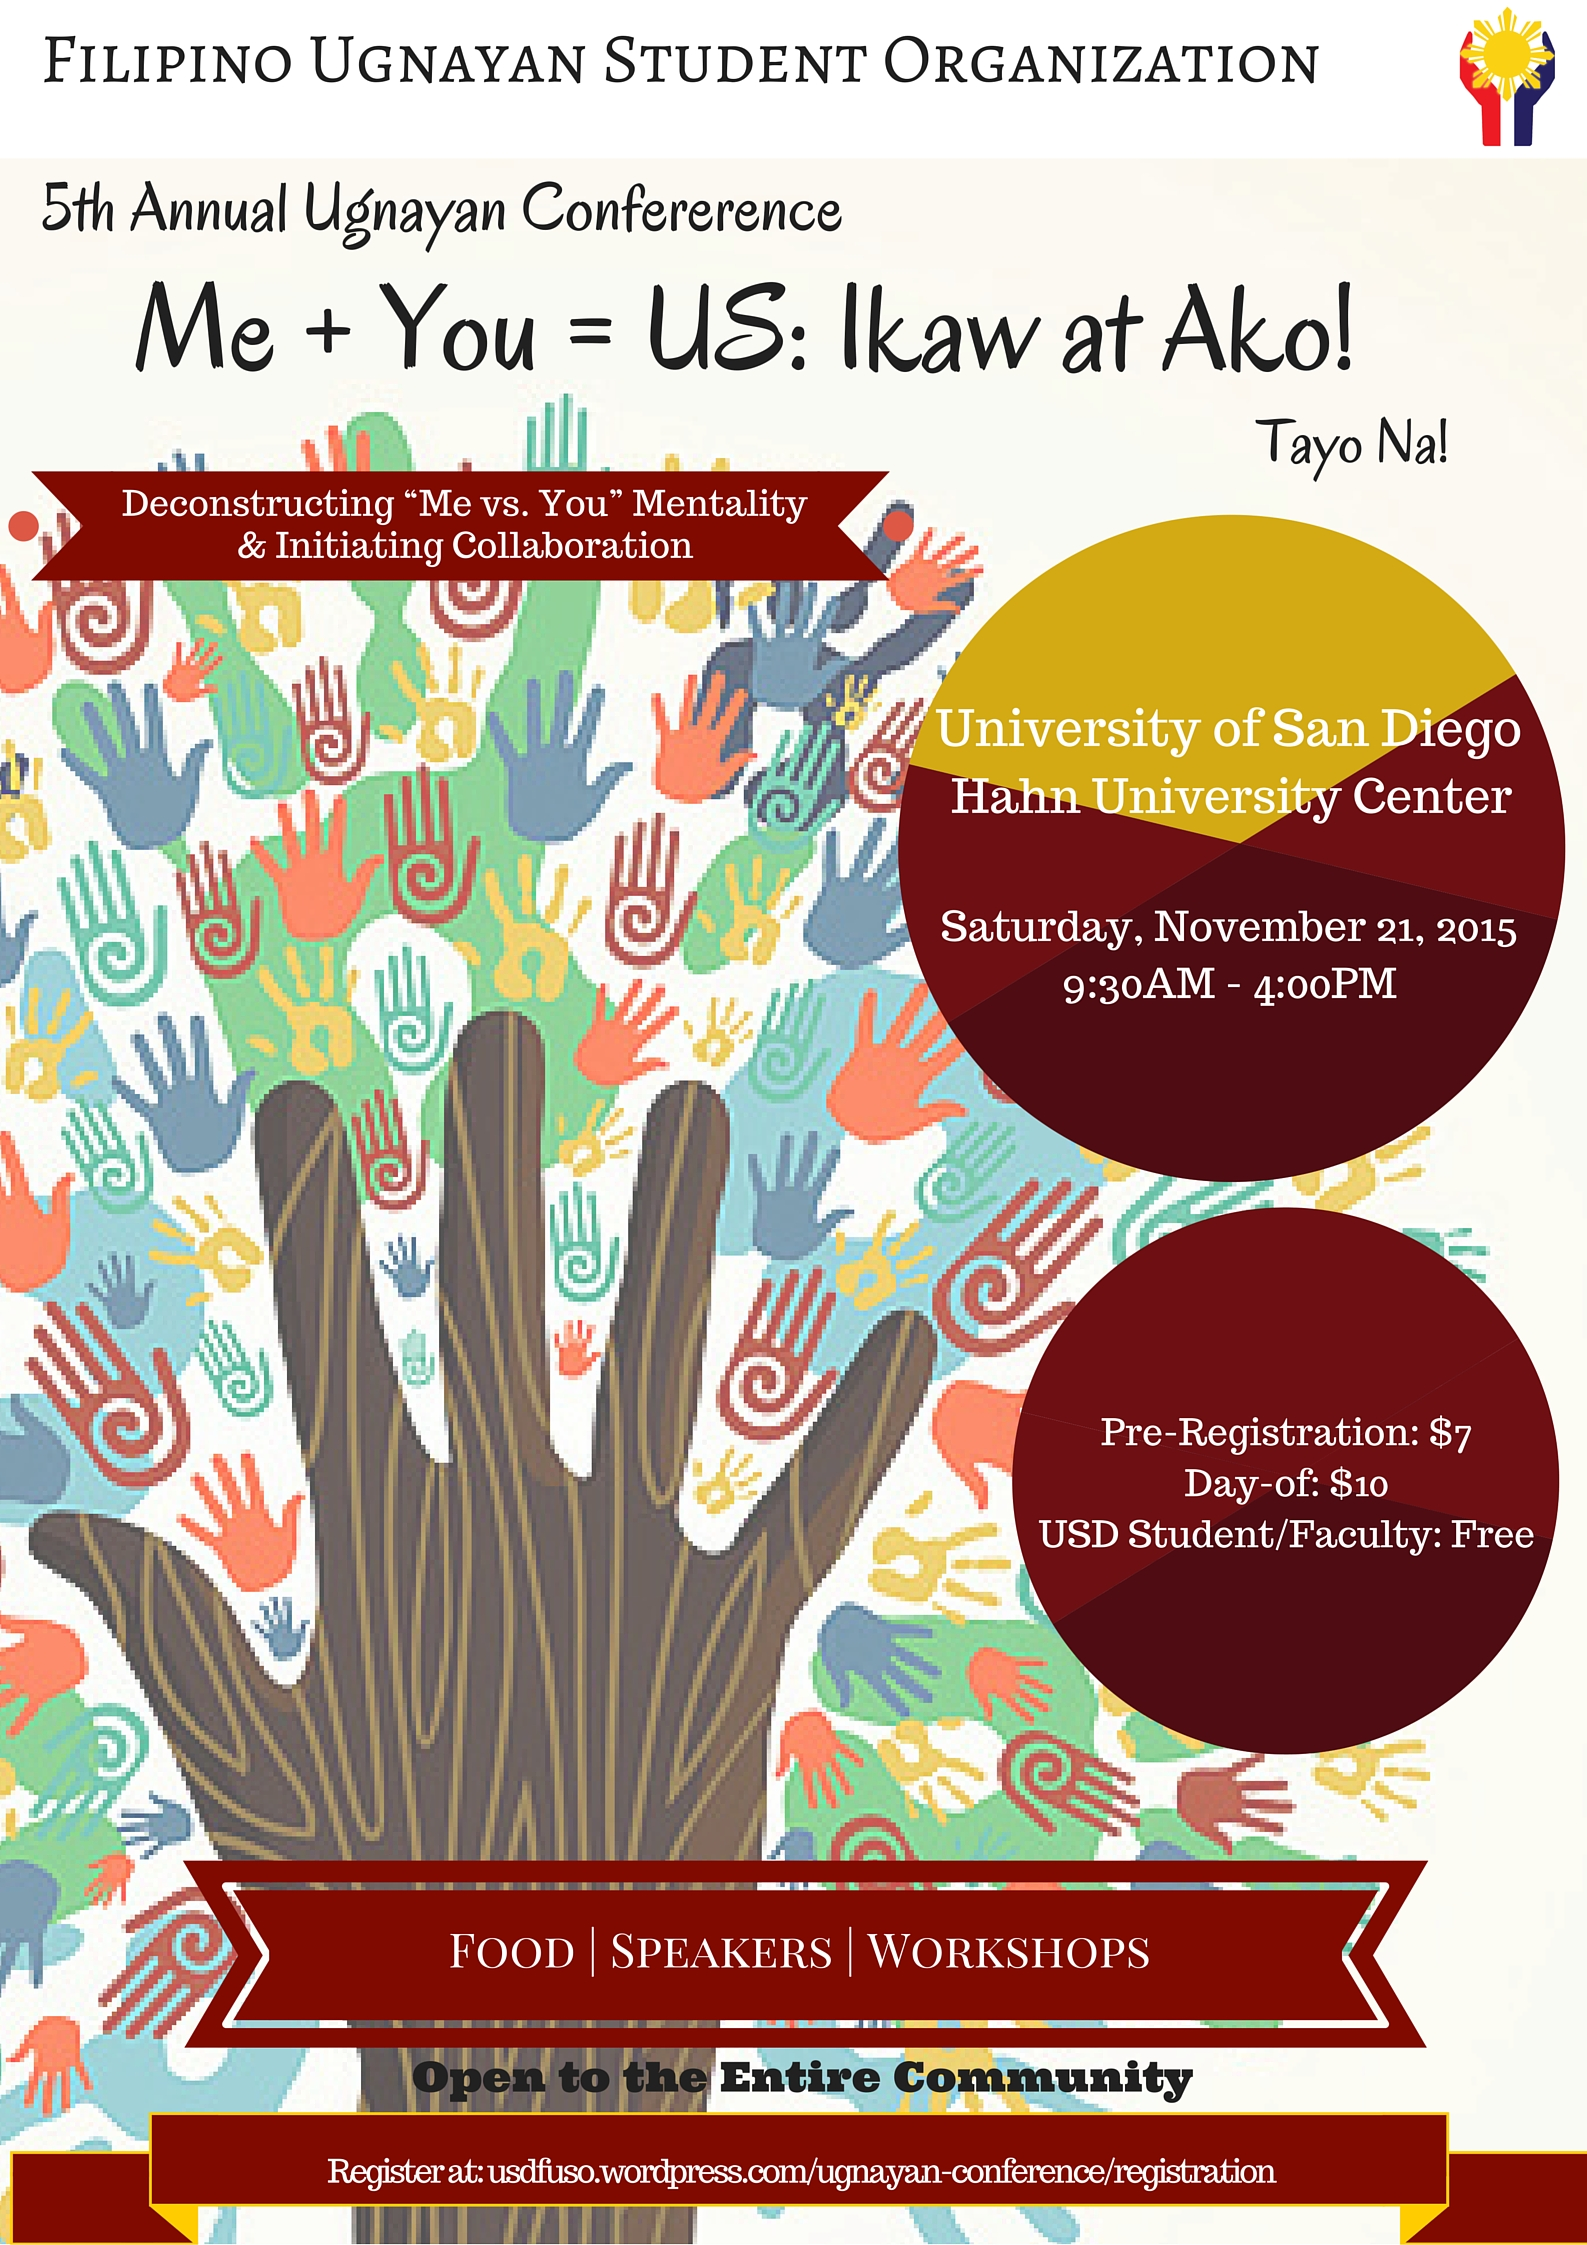 ugnayan-conference-2015-flyer.jpg